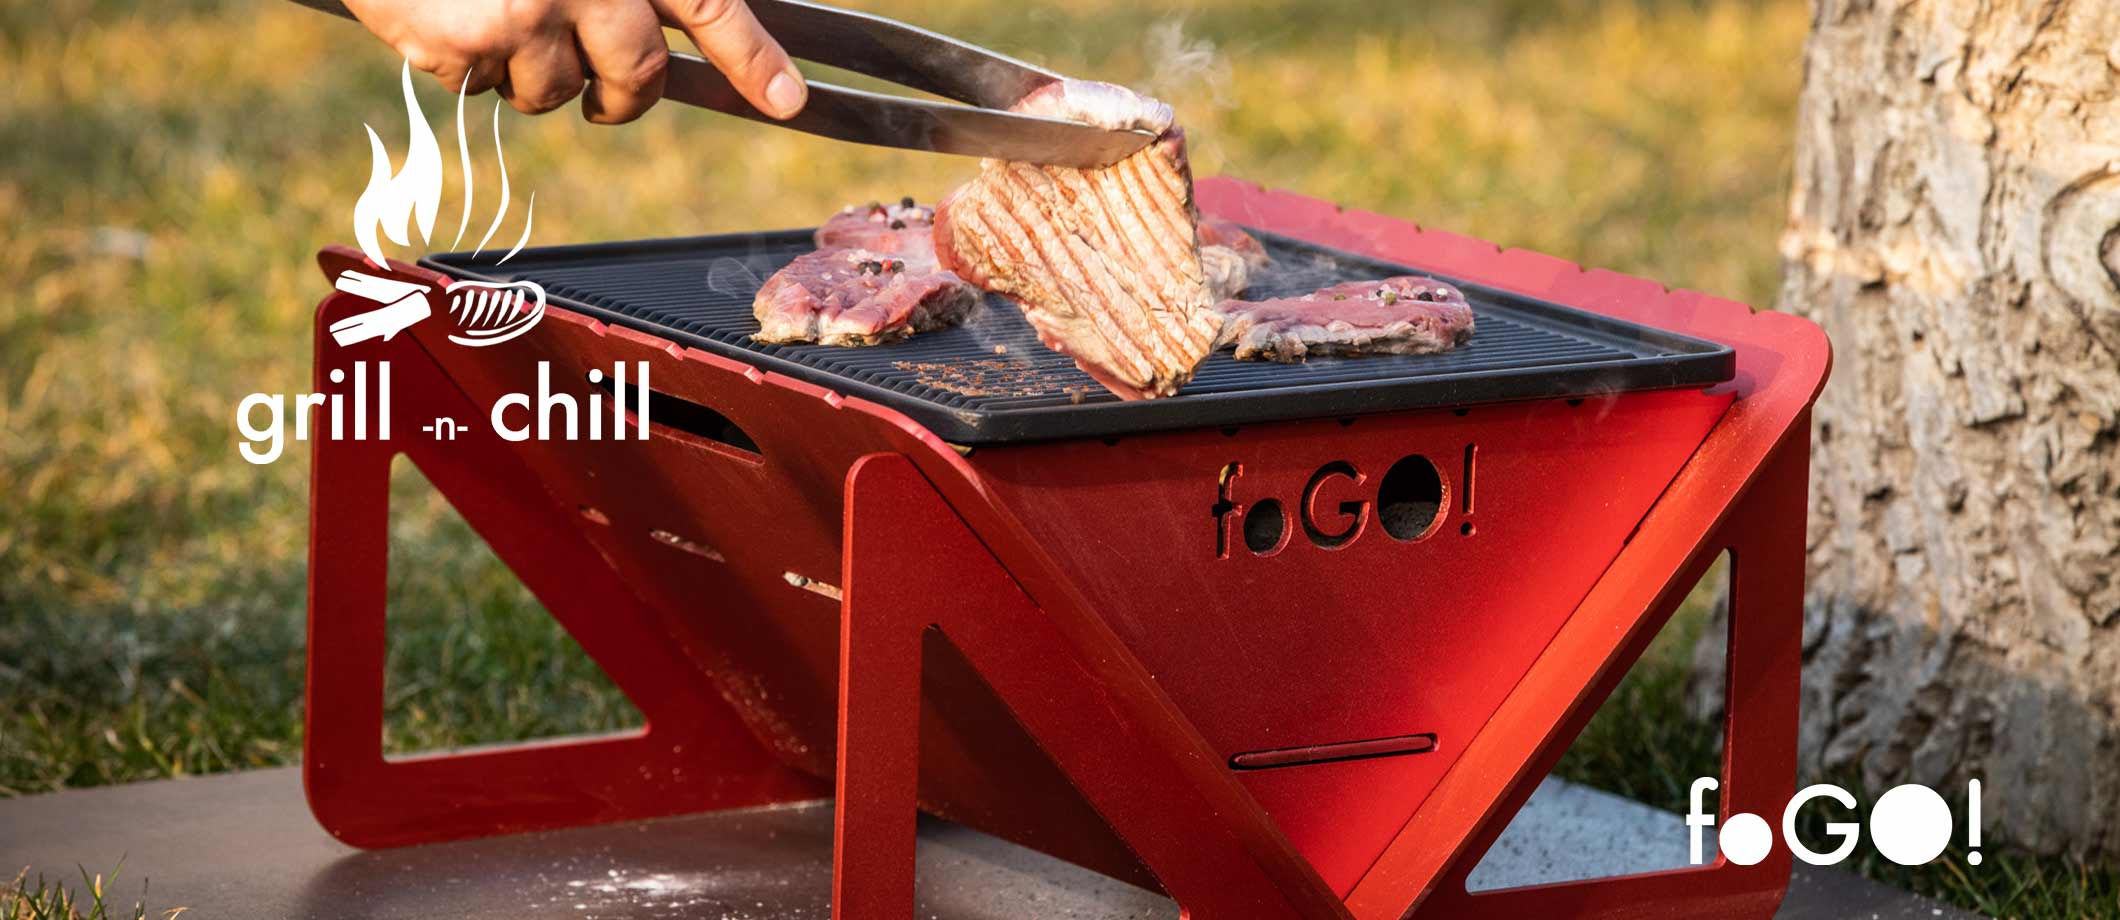 foGO gril red